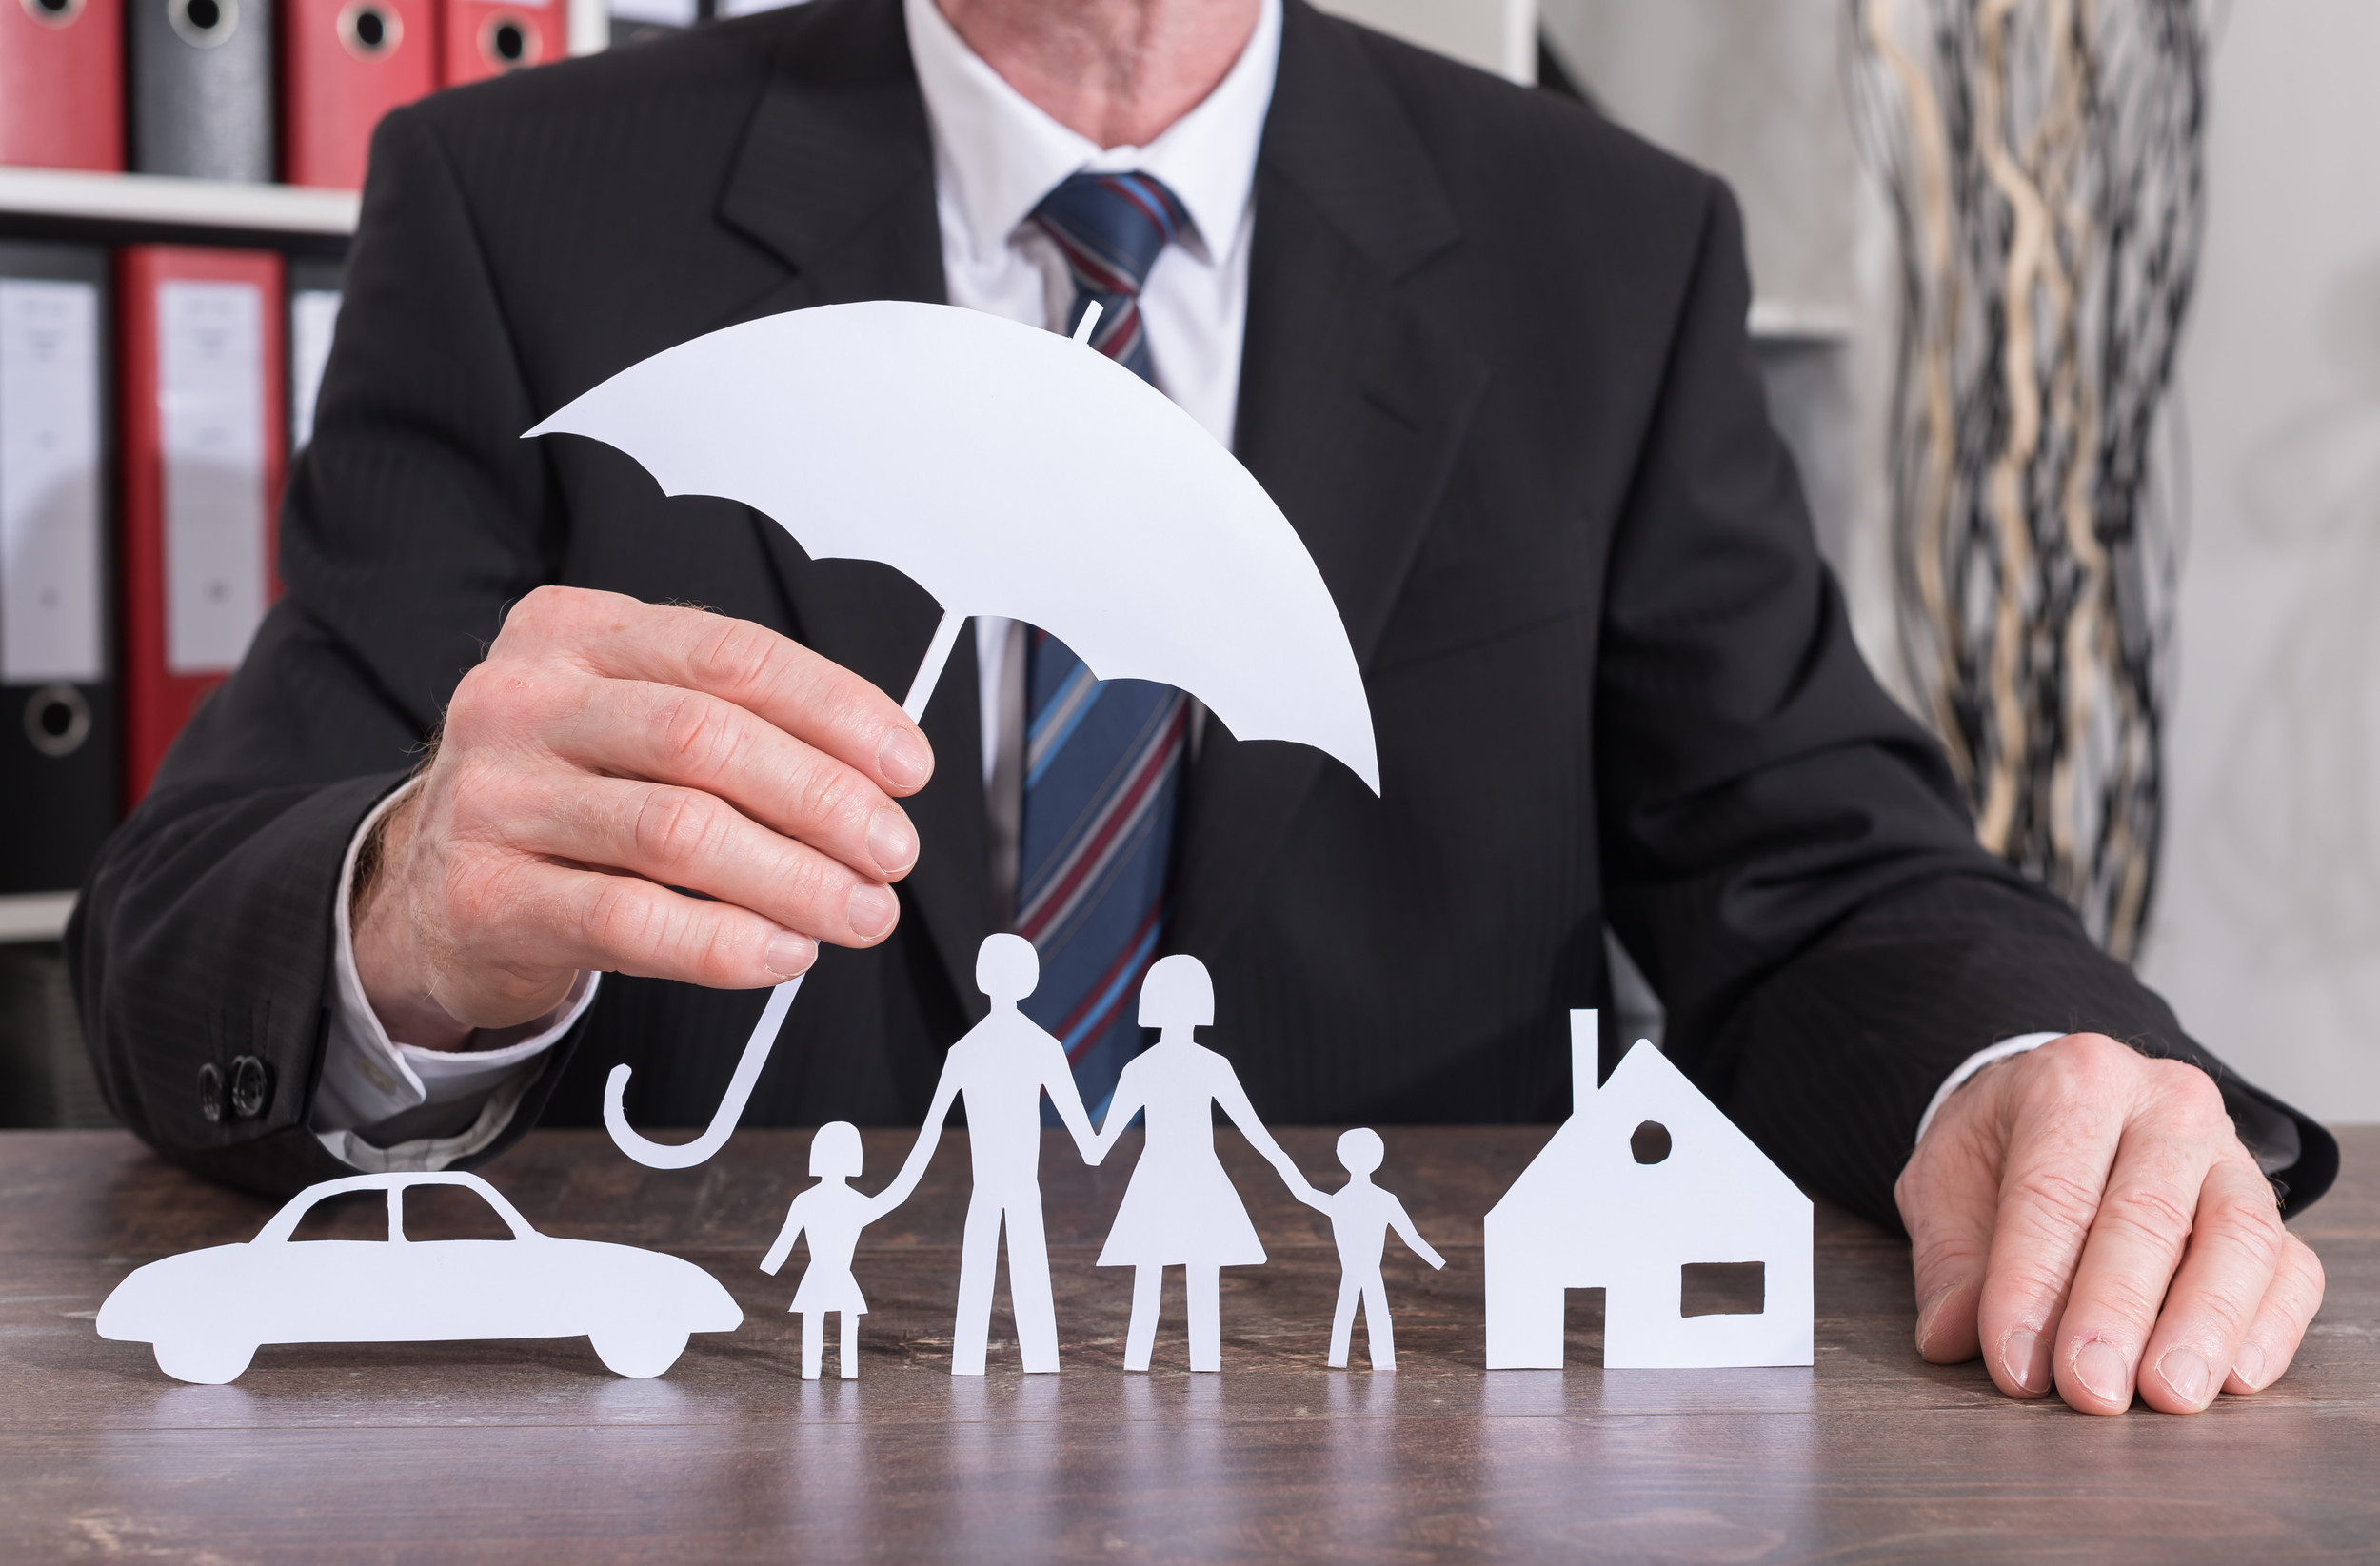 Umbrella insurance – what is it, and do you need it?